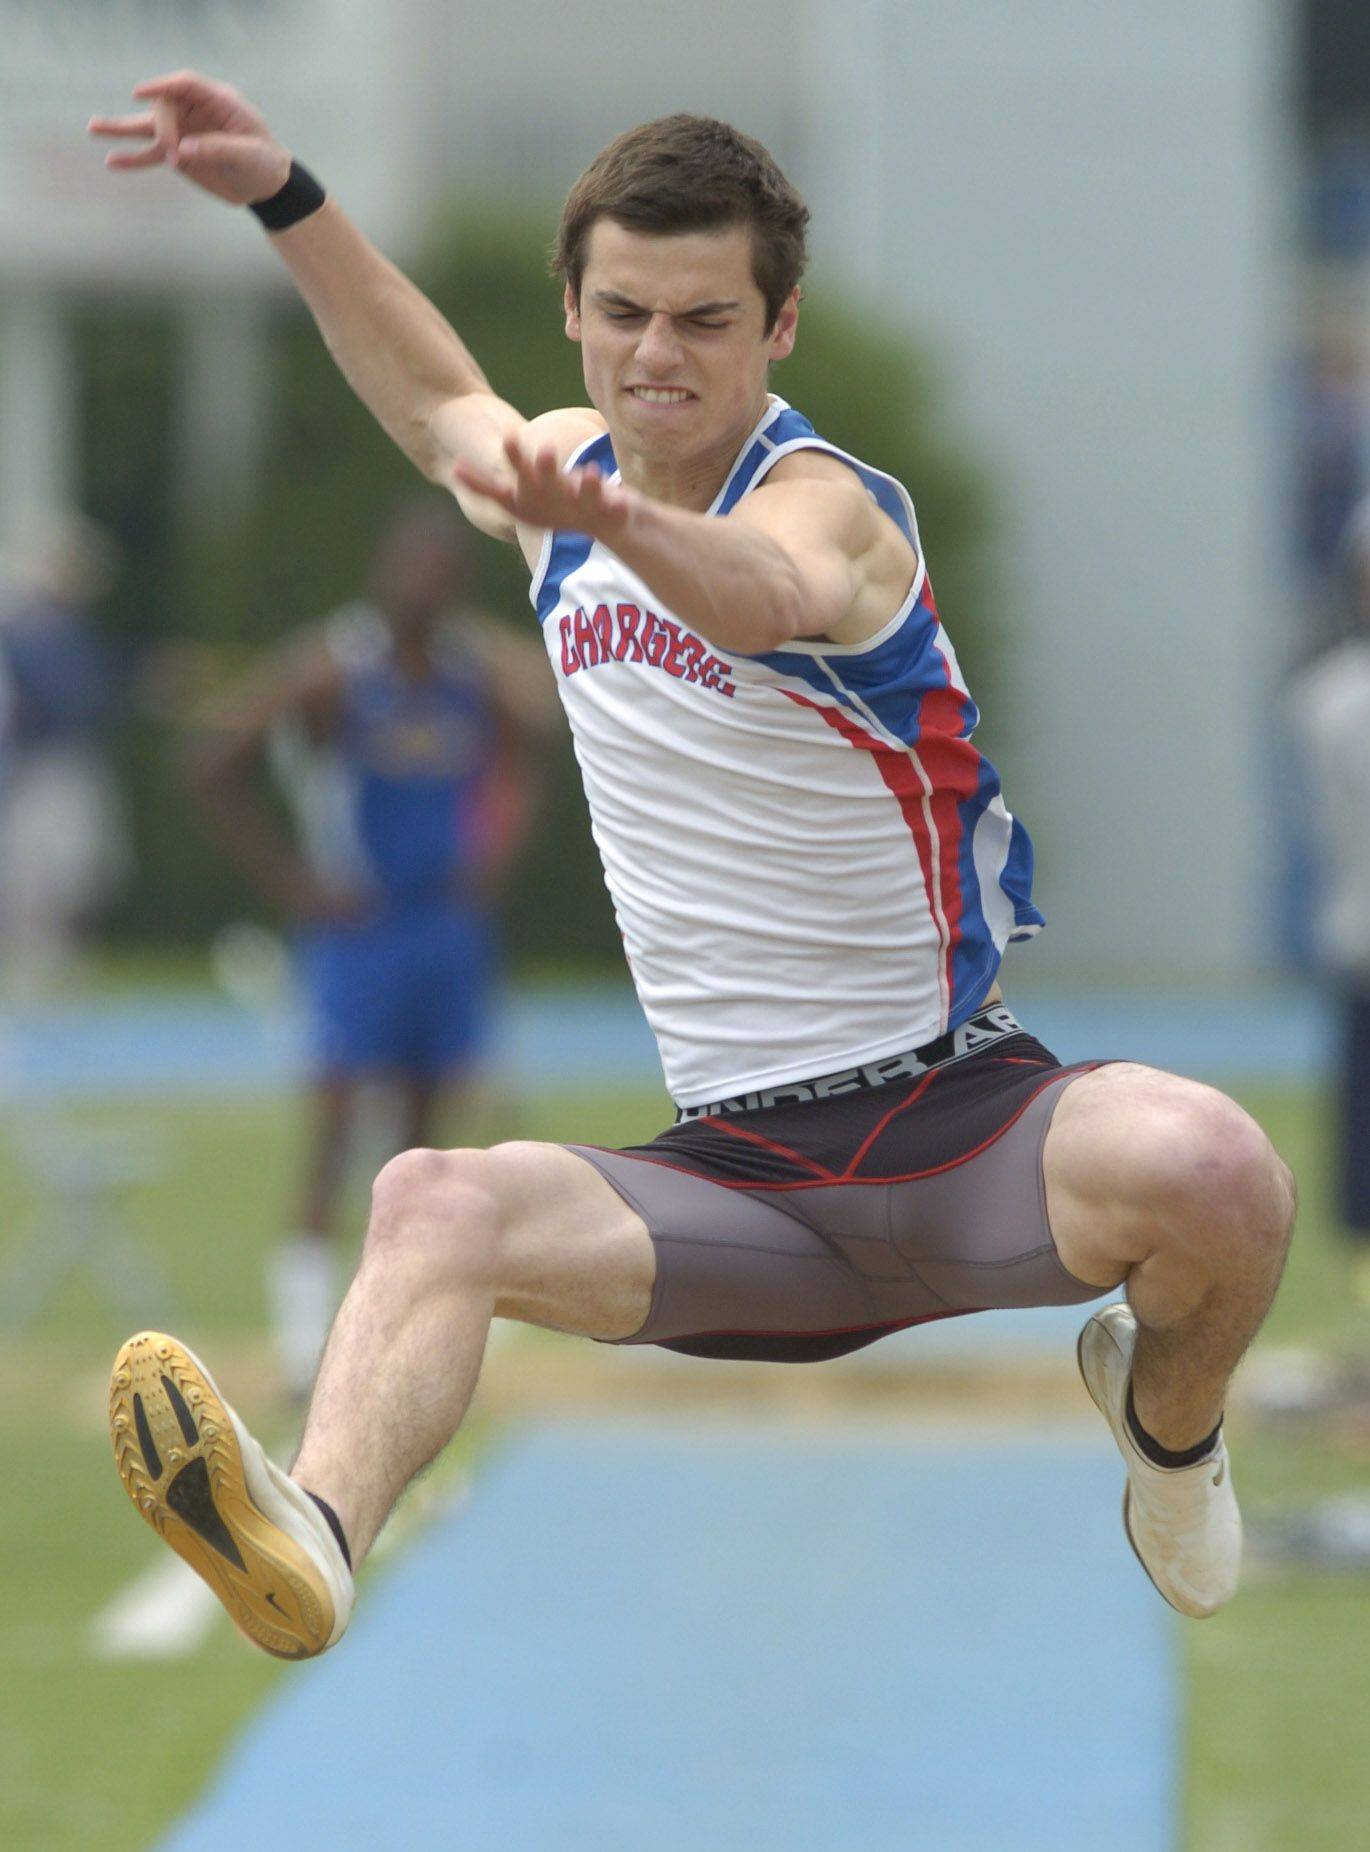 Dundee-Crown's Ardian Asani comptes in the long jump during the boys state track finals in Charleston Saturday.